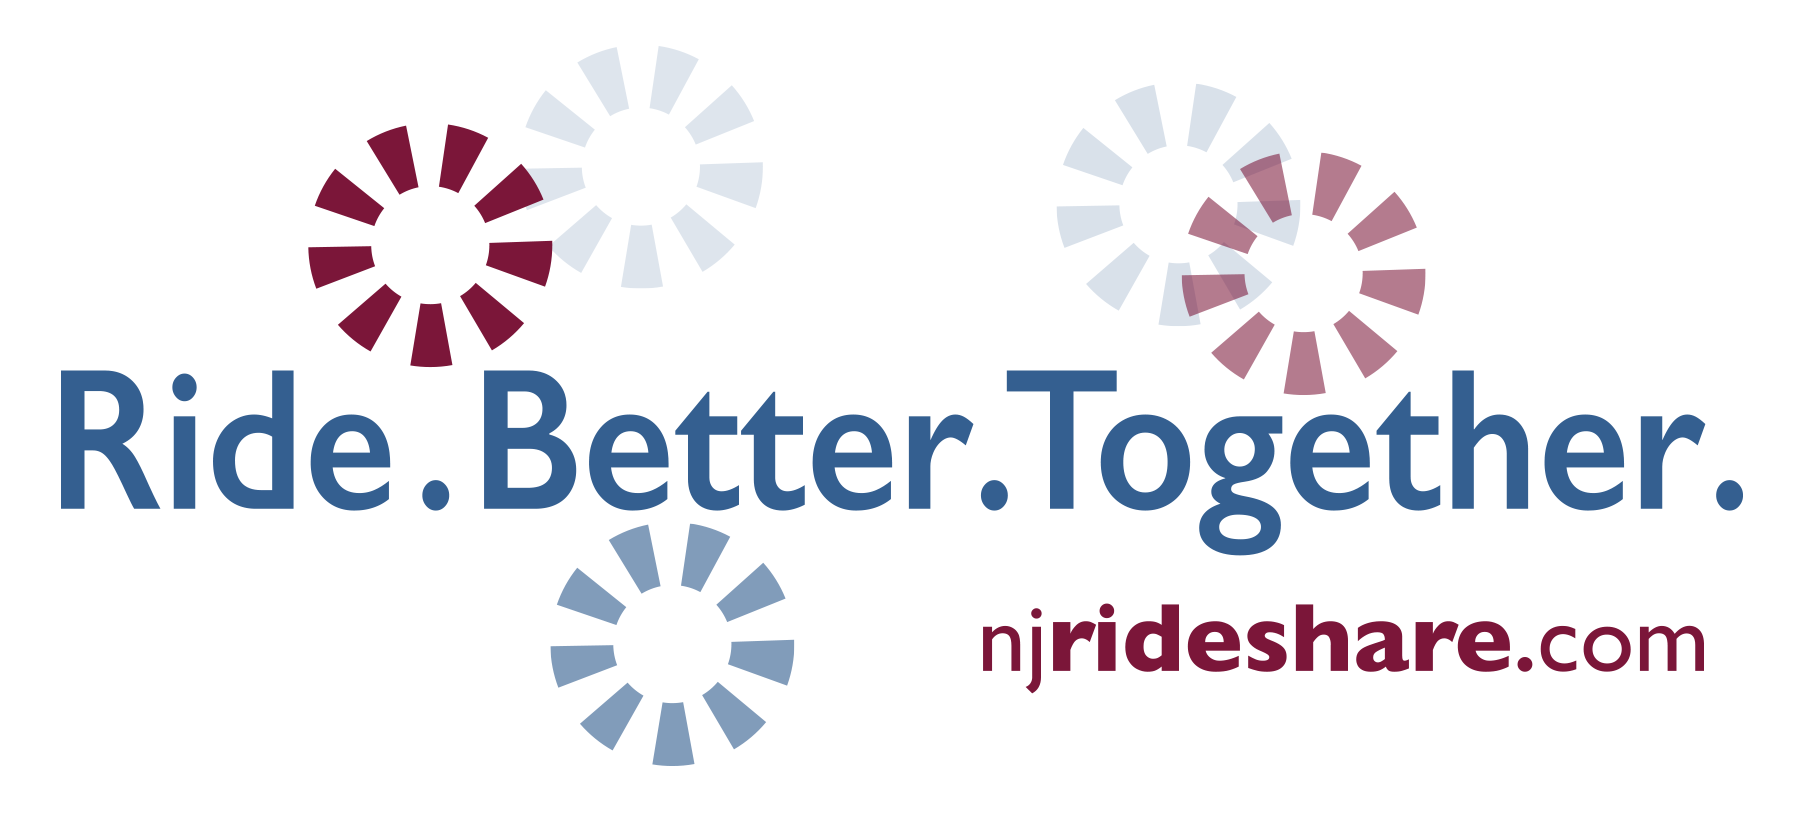 Ridesharing - Cross County Connection TMA